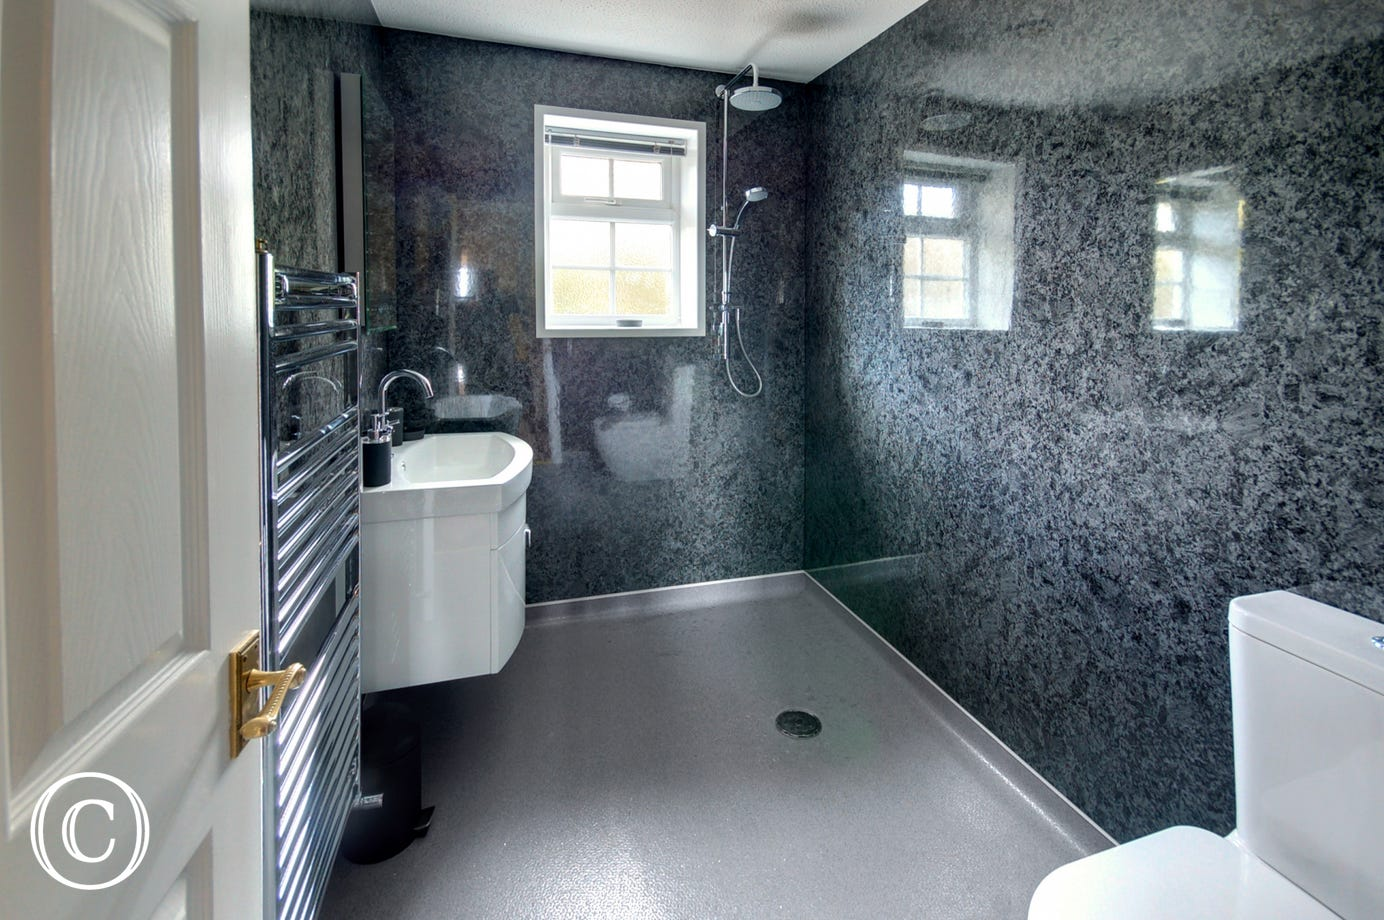 Large wet room with power shower